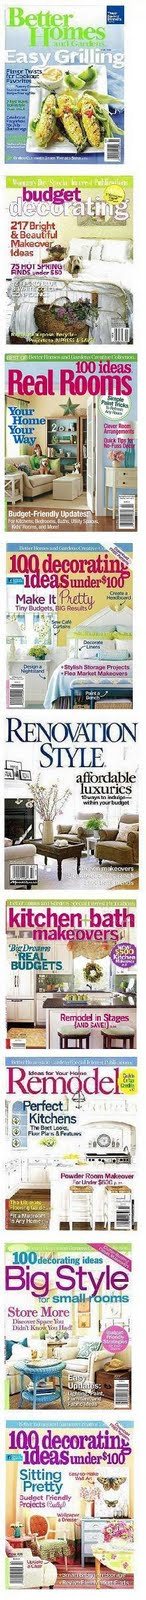 Red Door Home has been featured in these magazines